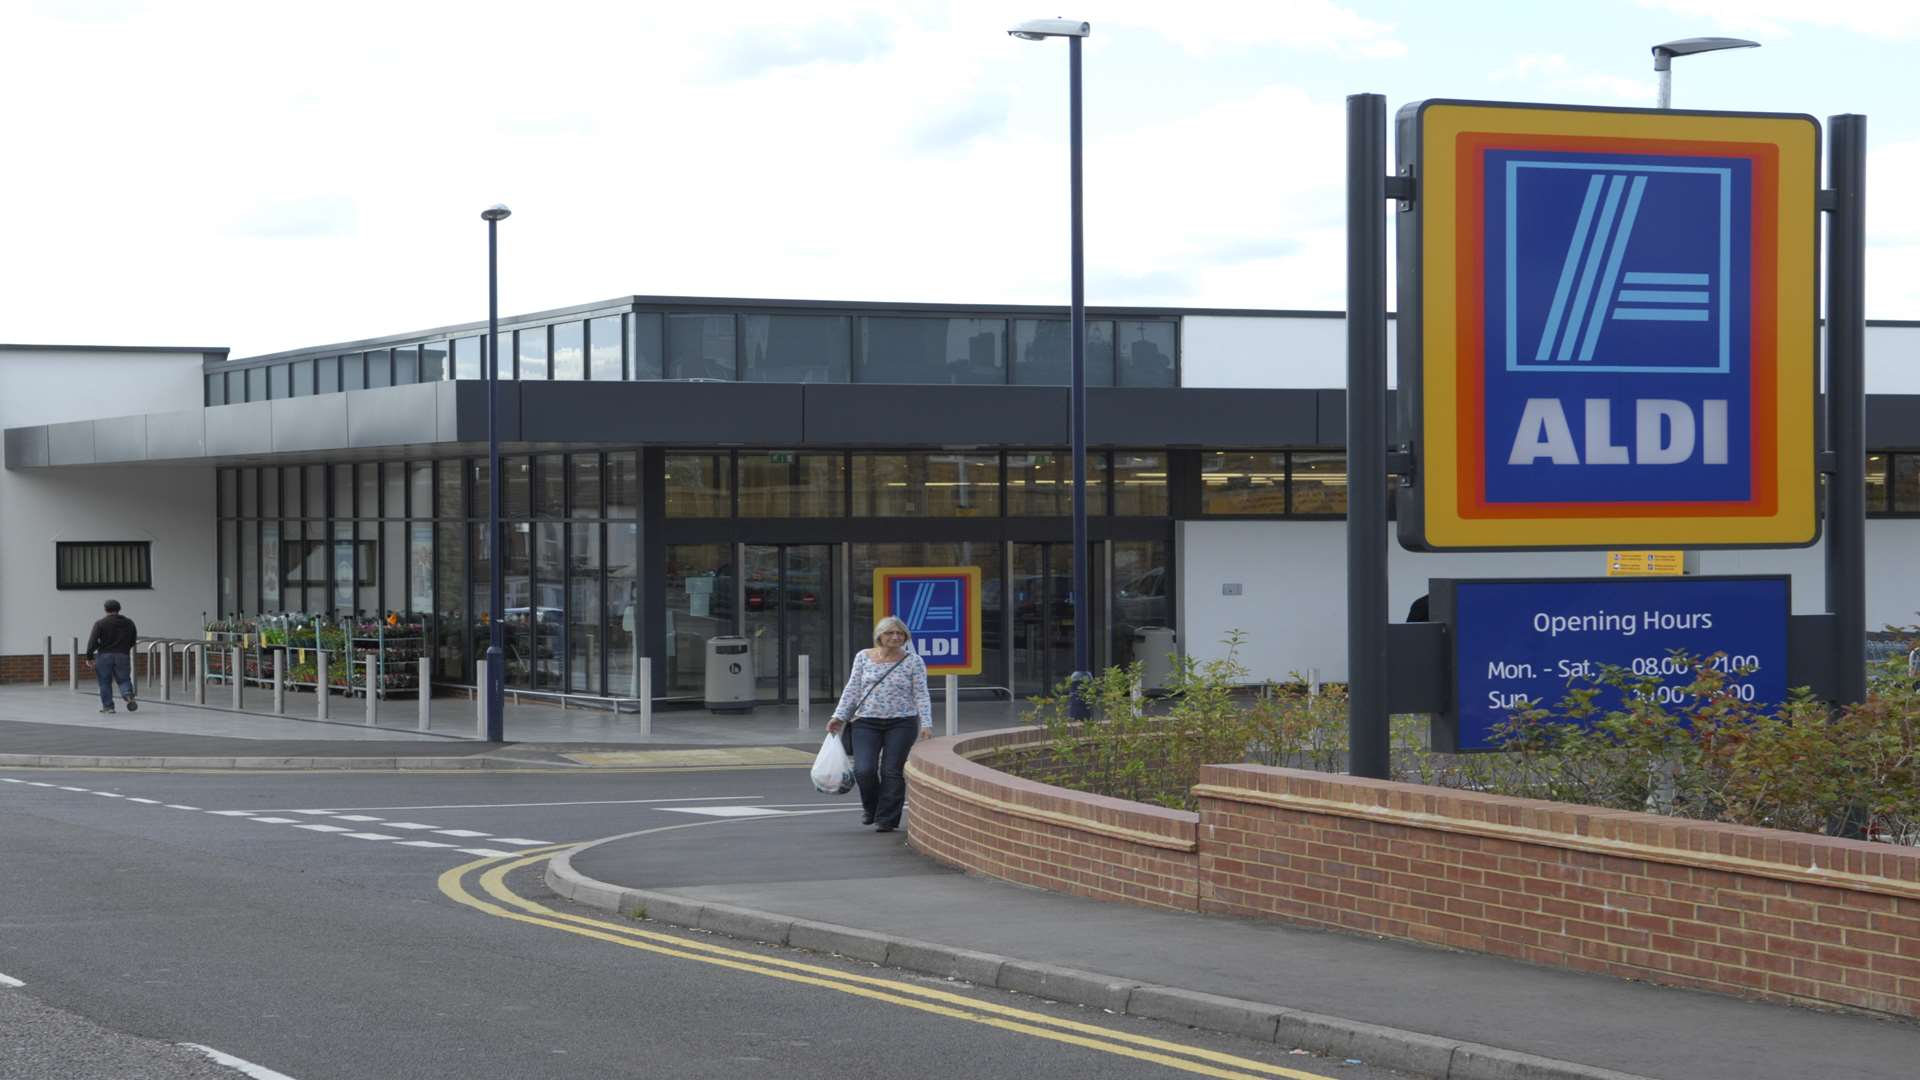 Aldi Herne Sevenoaks Waitrose Objects To New Aldi